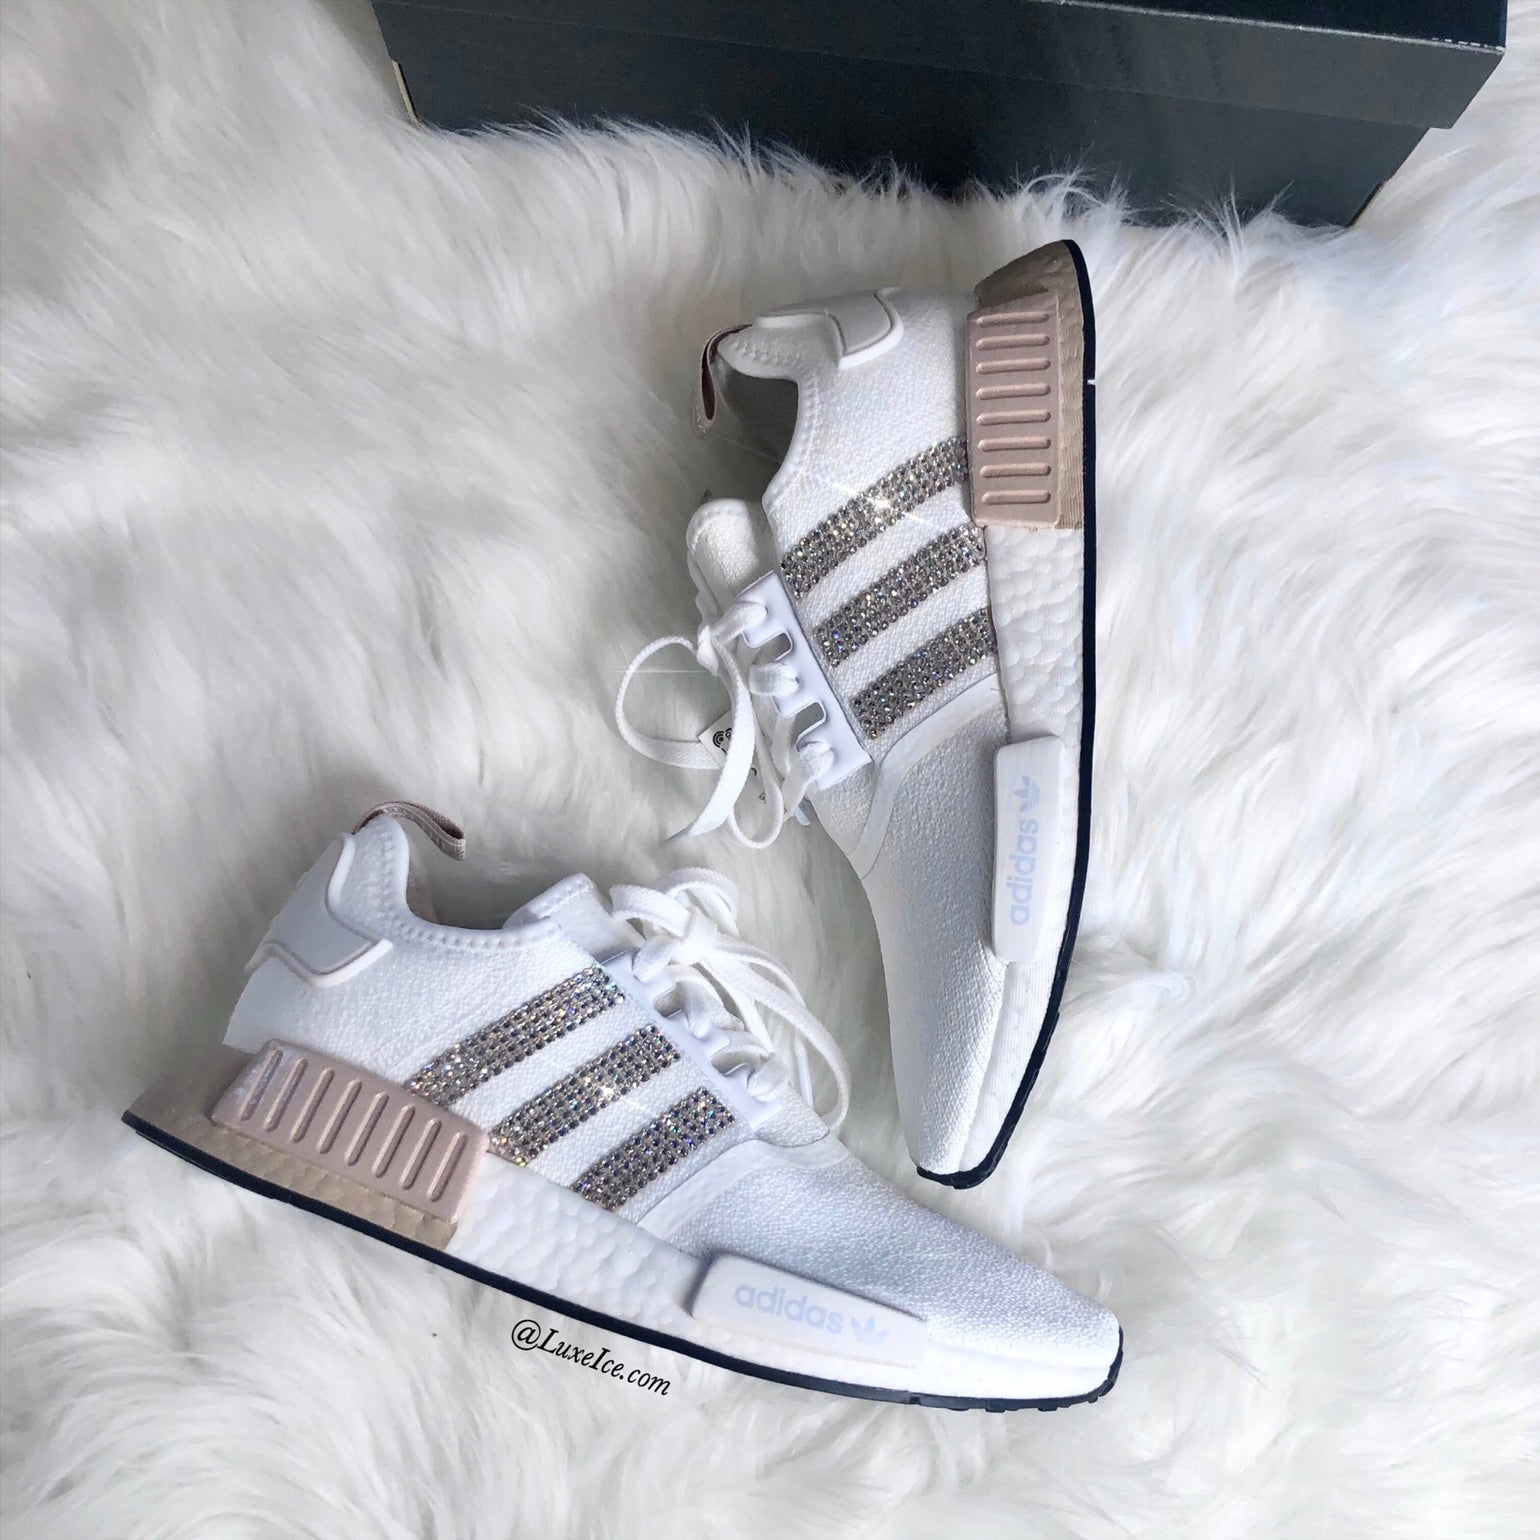 pavo Autorizar Consulta  Swarovski Adidas NMD Runner Casual Shoes White/Ash Pearl customized with  Swarovski Crystals. | Luxe Ice